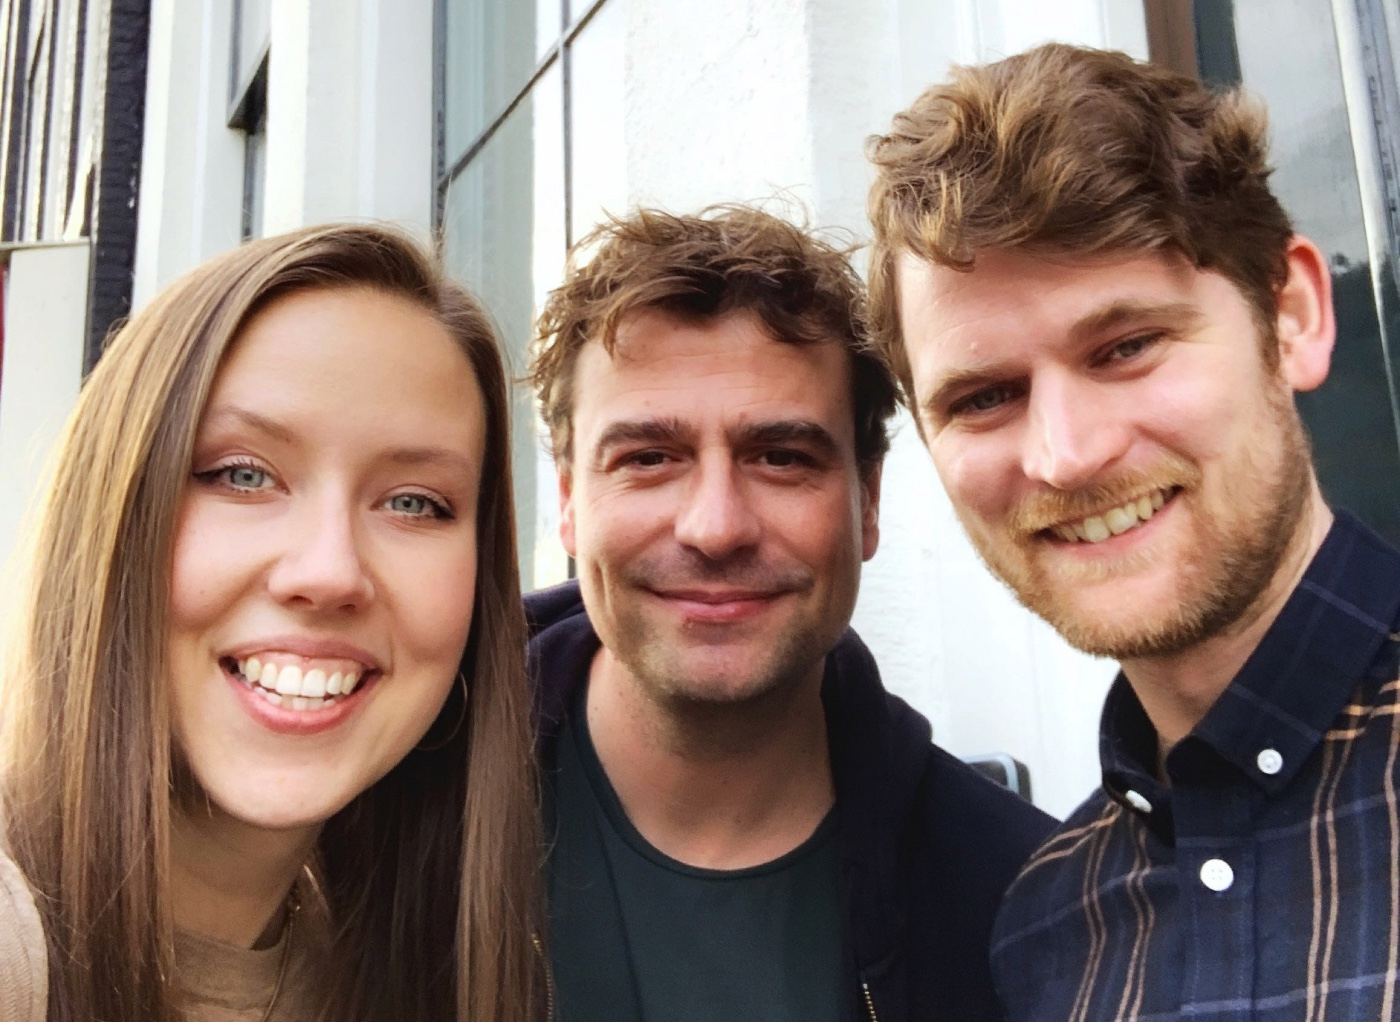 From left to right: Framer's newest team members, Kait Creamer, Lennart Paasse, and Ed Mortlock.